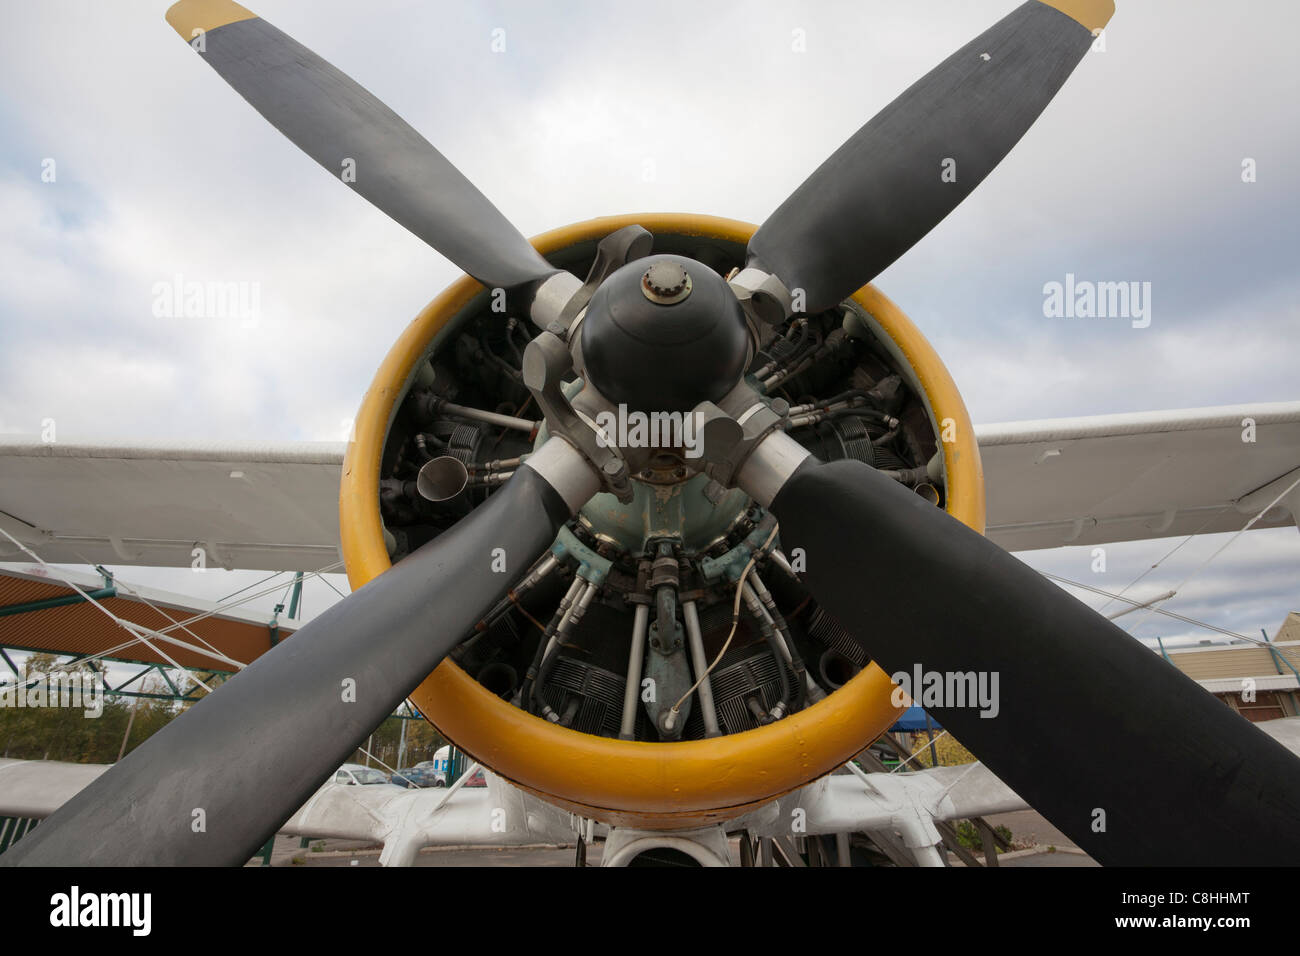 Antonov An-2 airplane engine and propeller - Stock Image